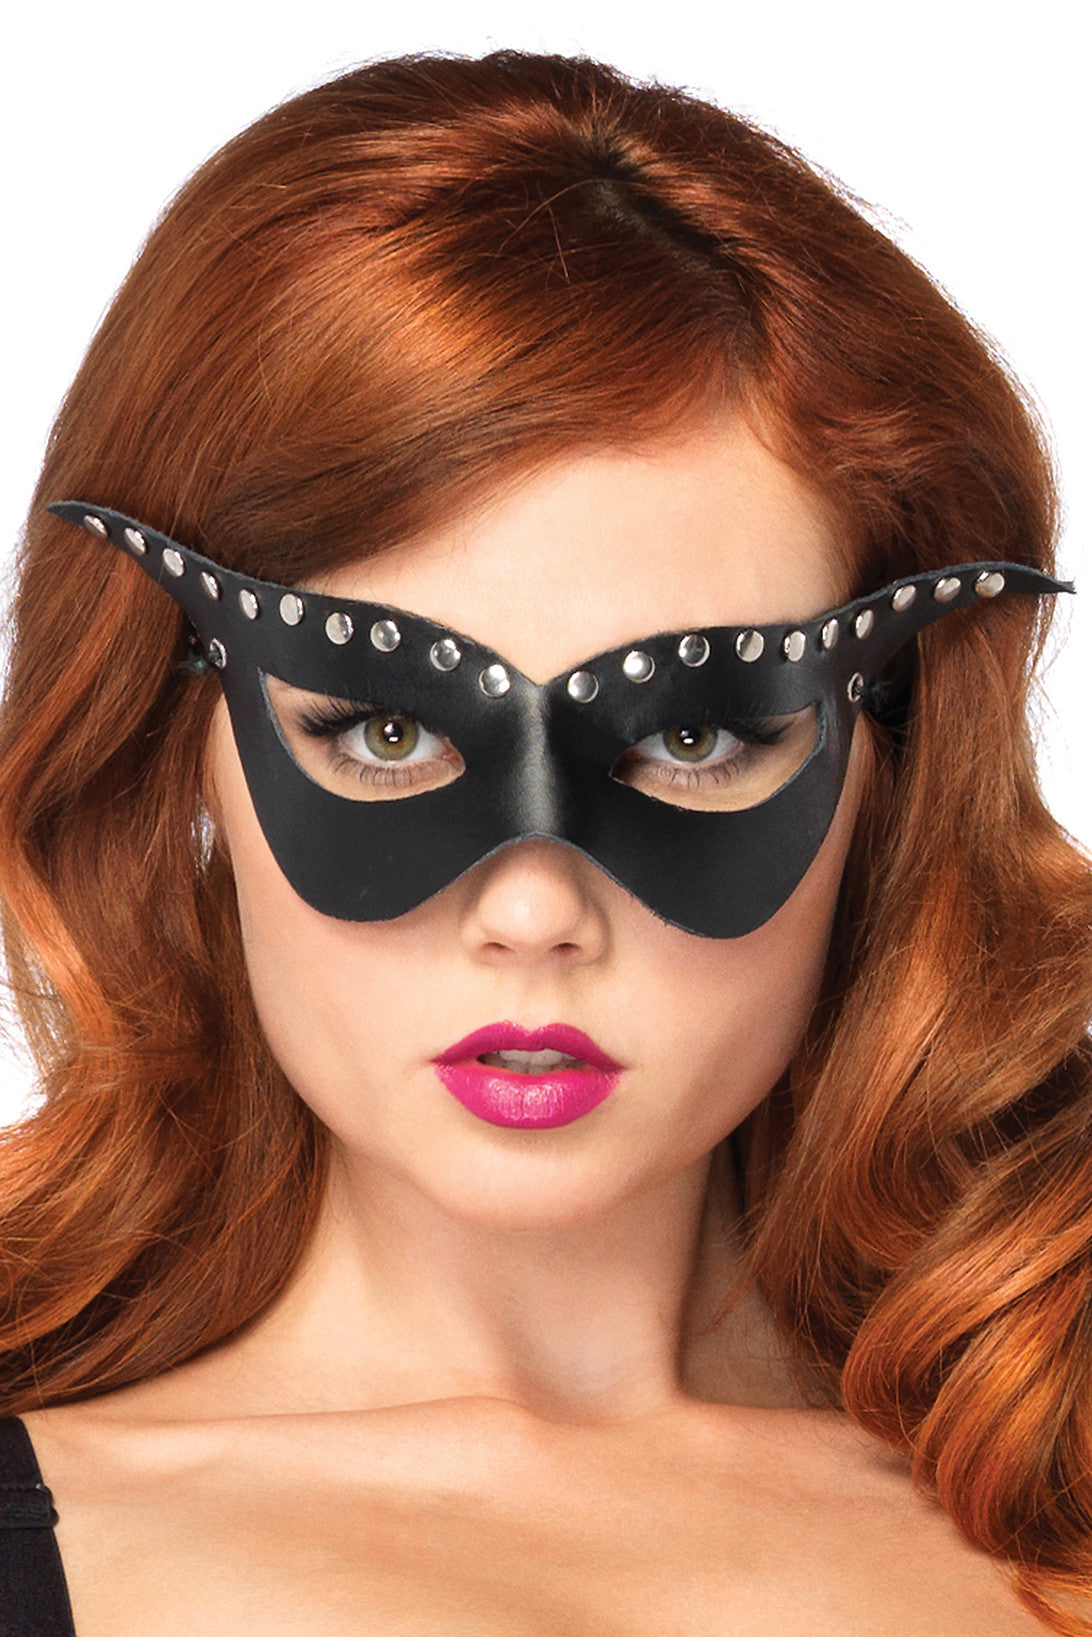 Bad Girl Studded Mask